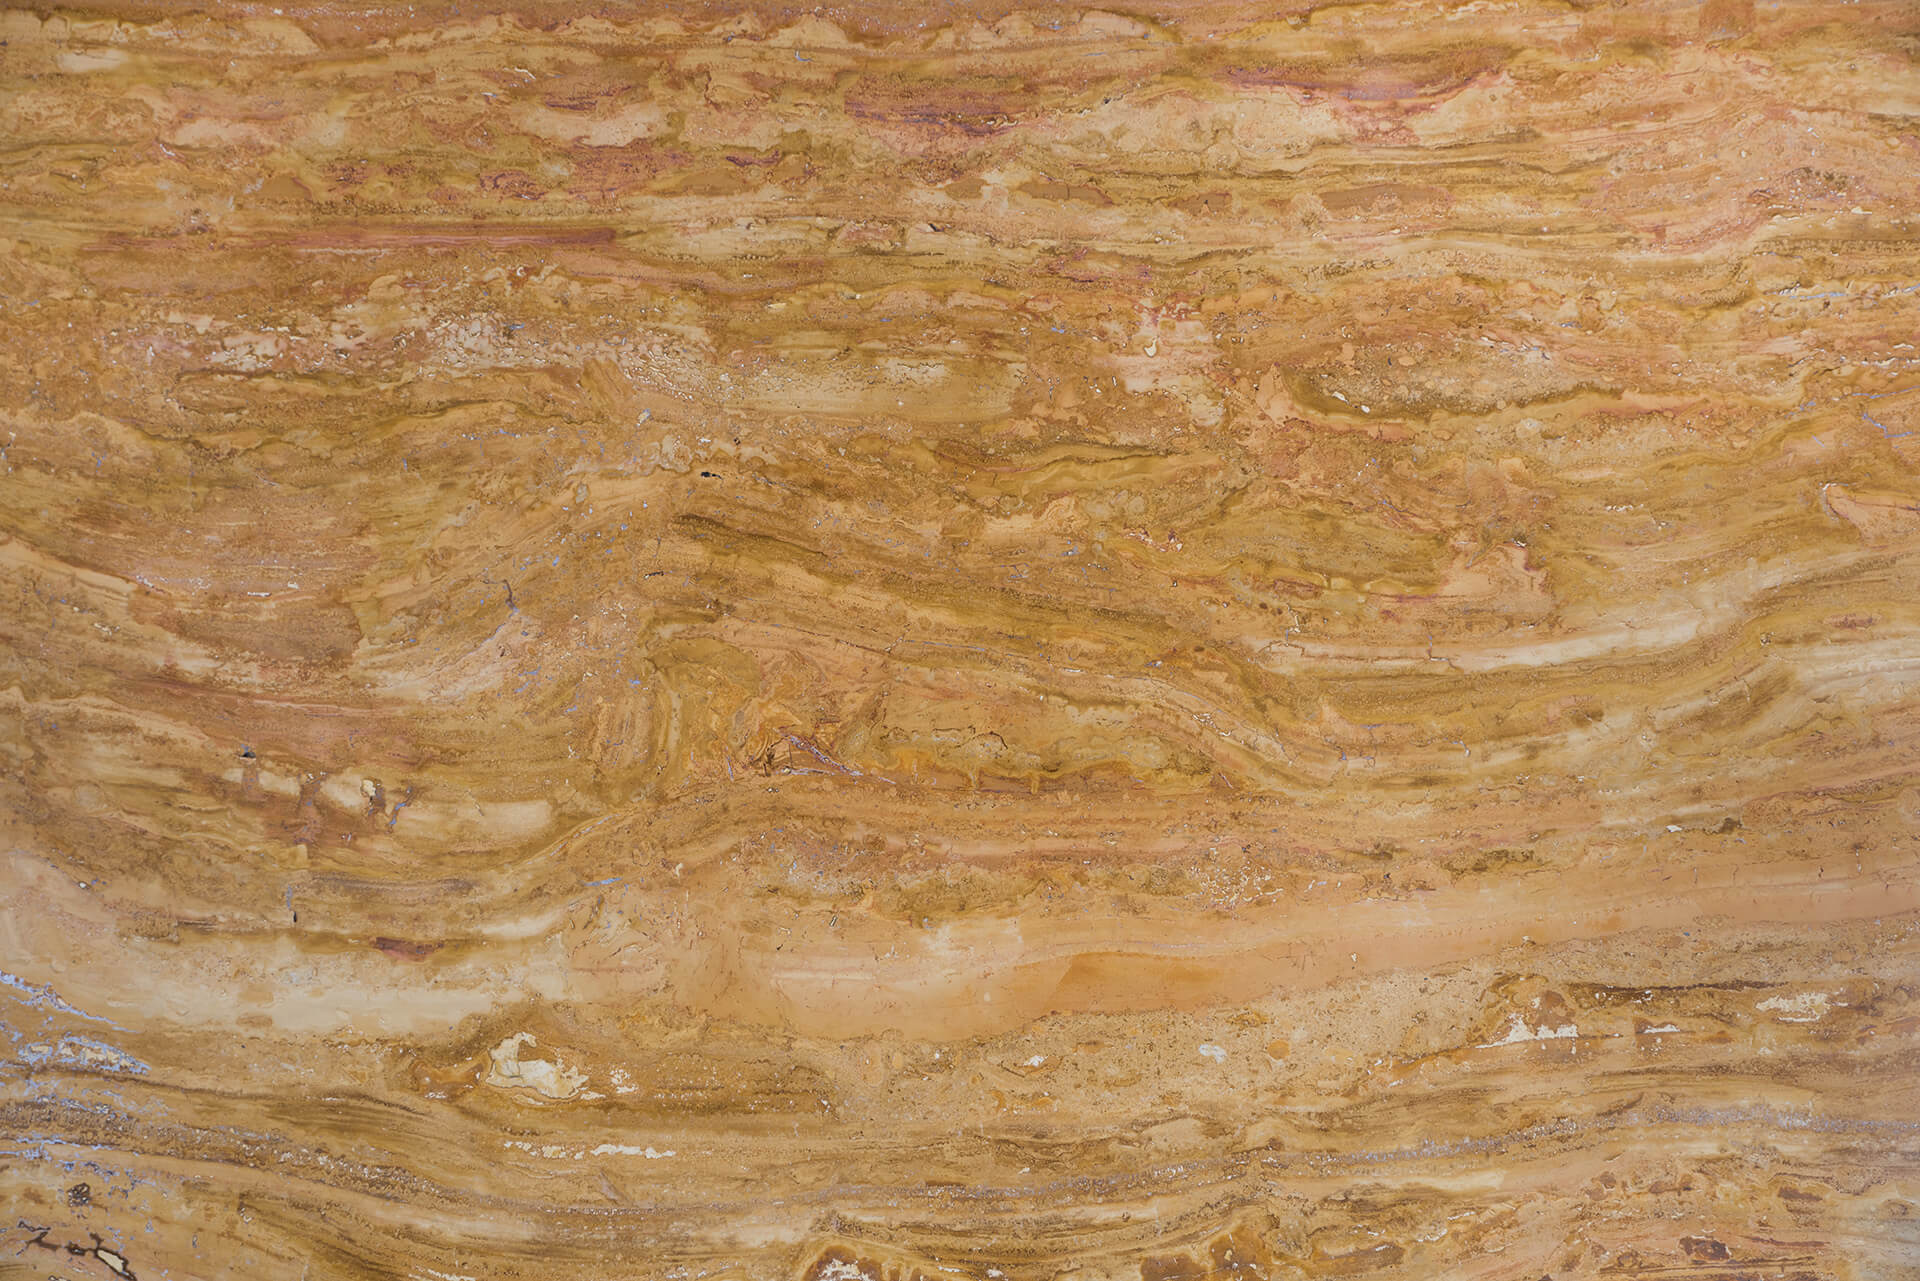 Lemon-travertine-stone